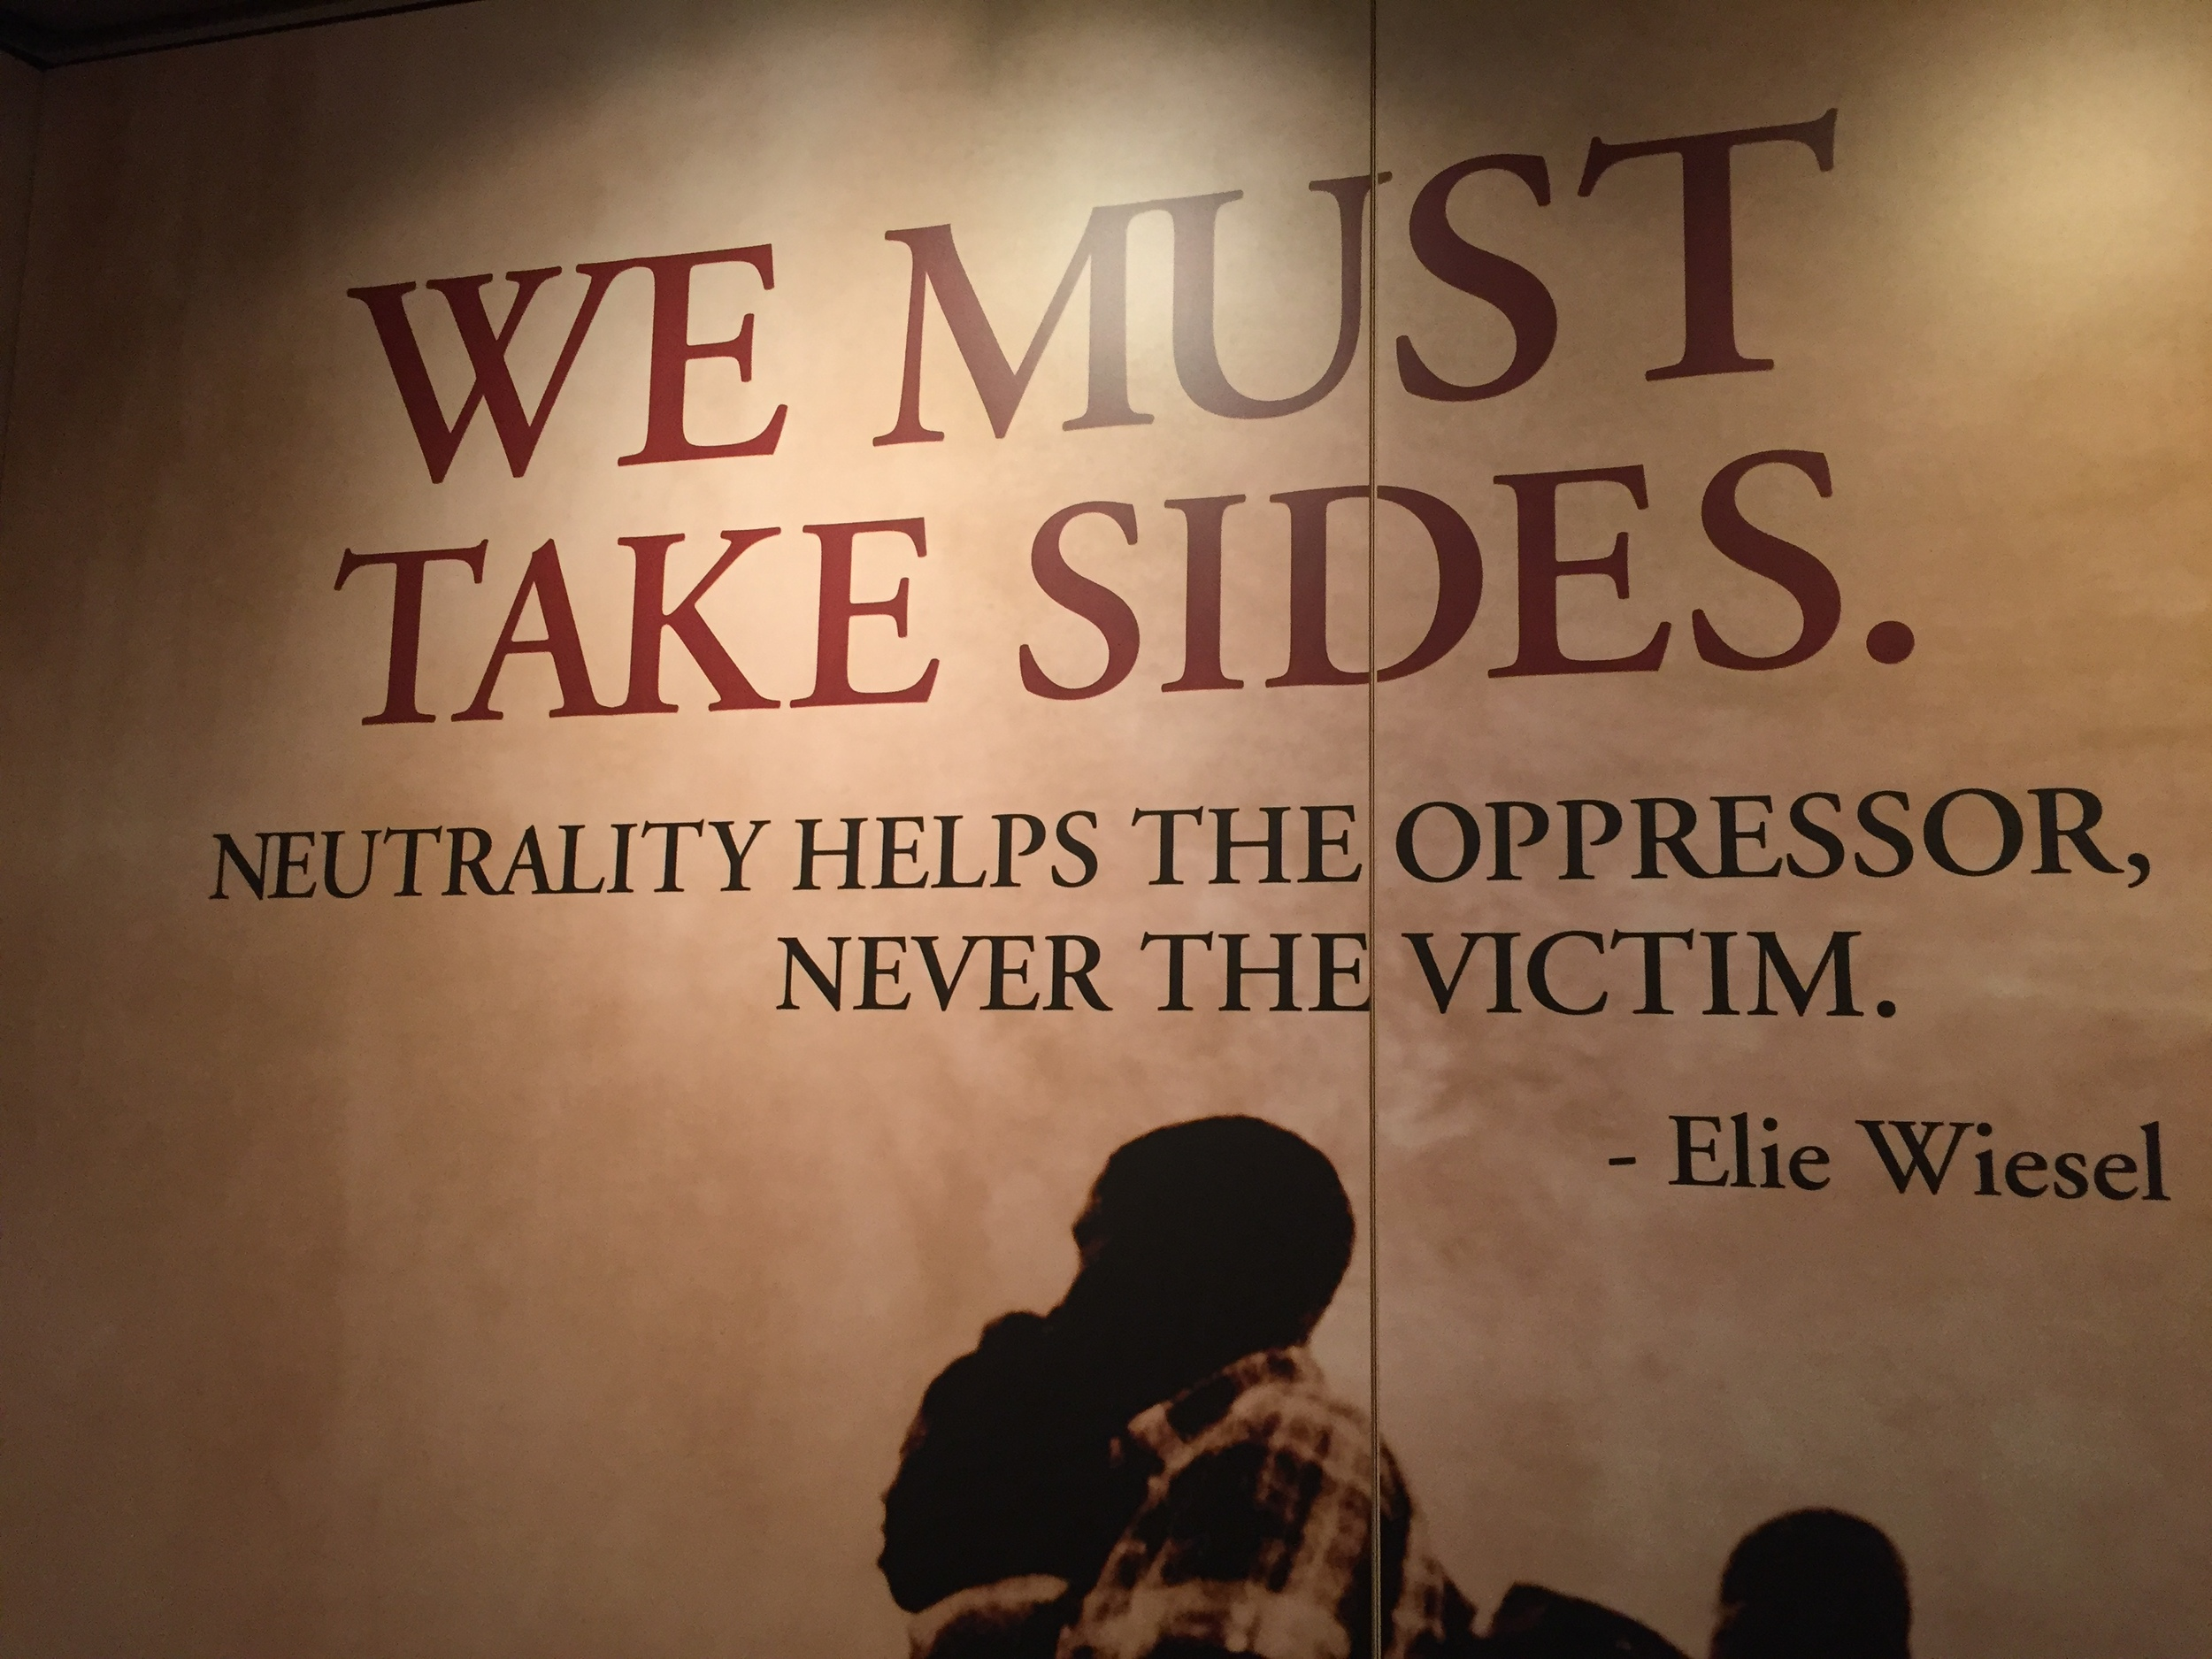 At the Southern Poverty Law Center